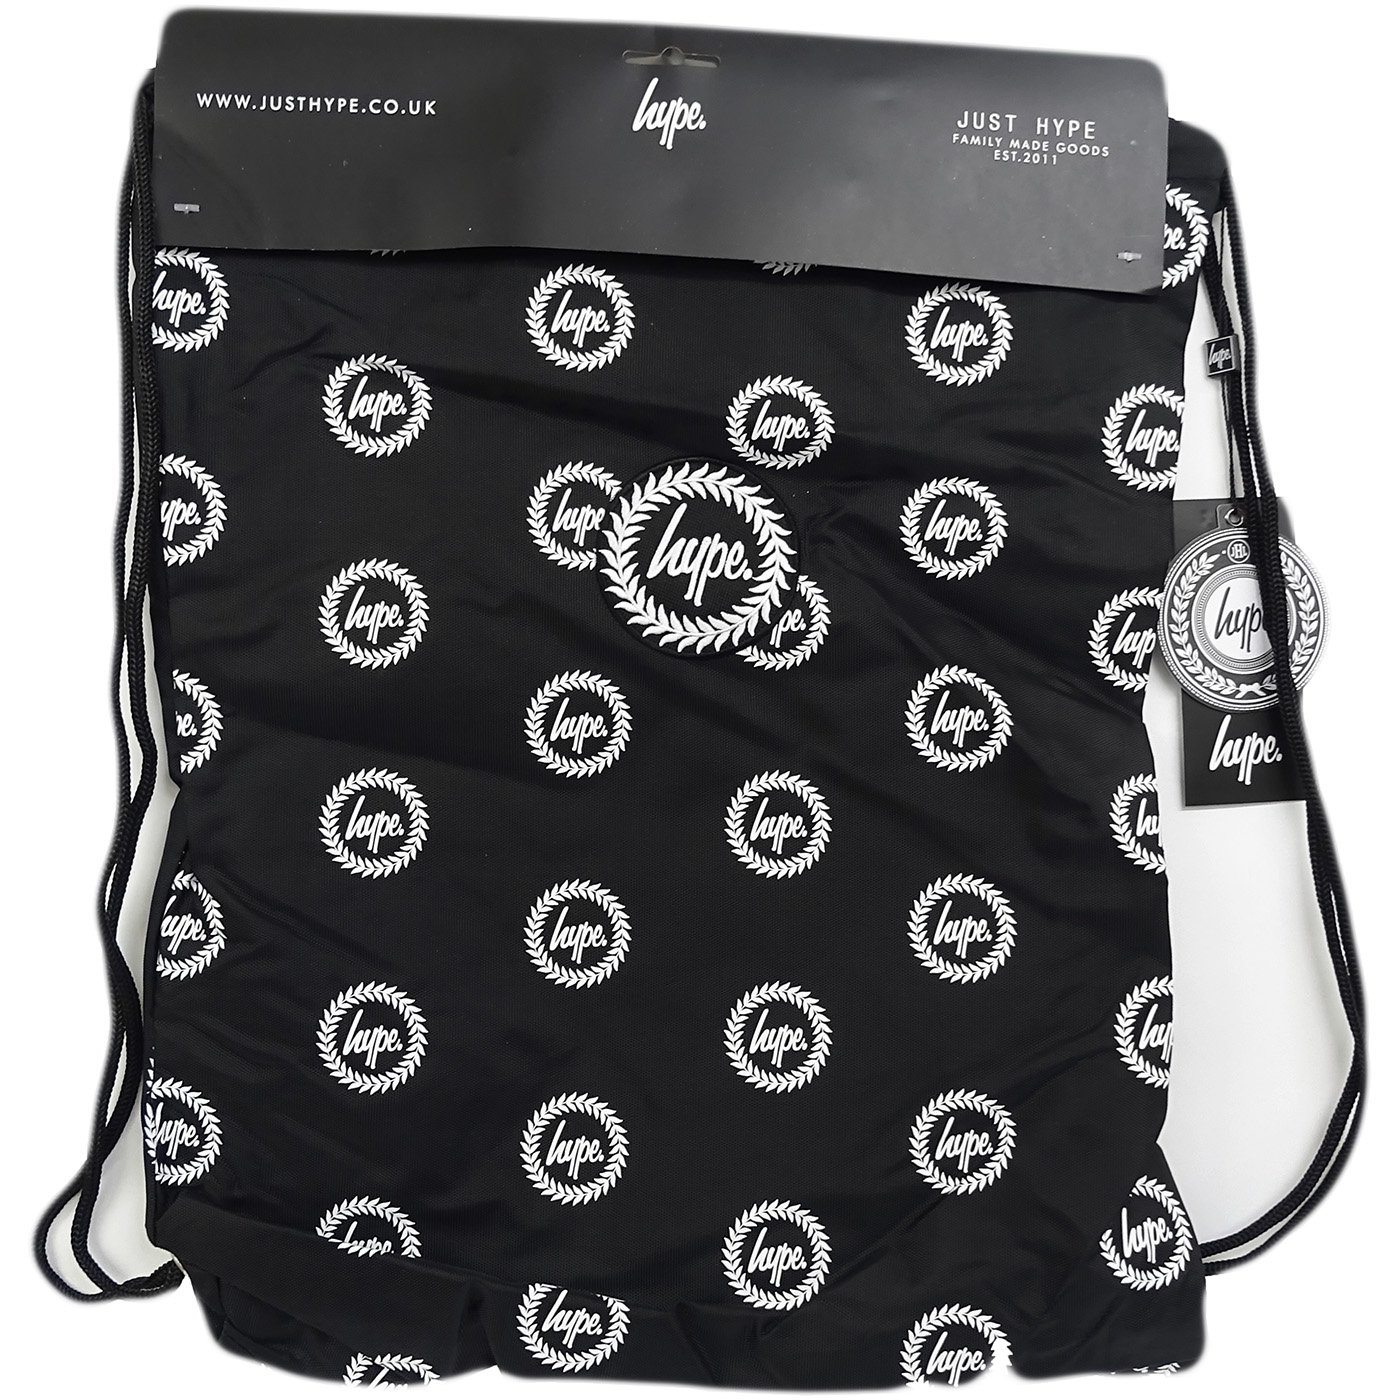 Hype Black Drawstring Bag Will All Over Hype Crest Logo  - Drawstring Repeat Crest